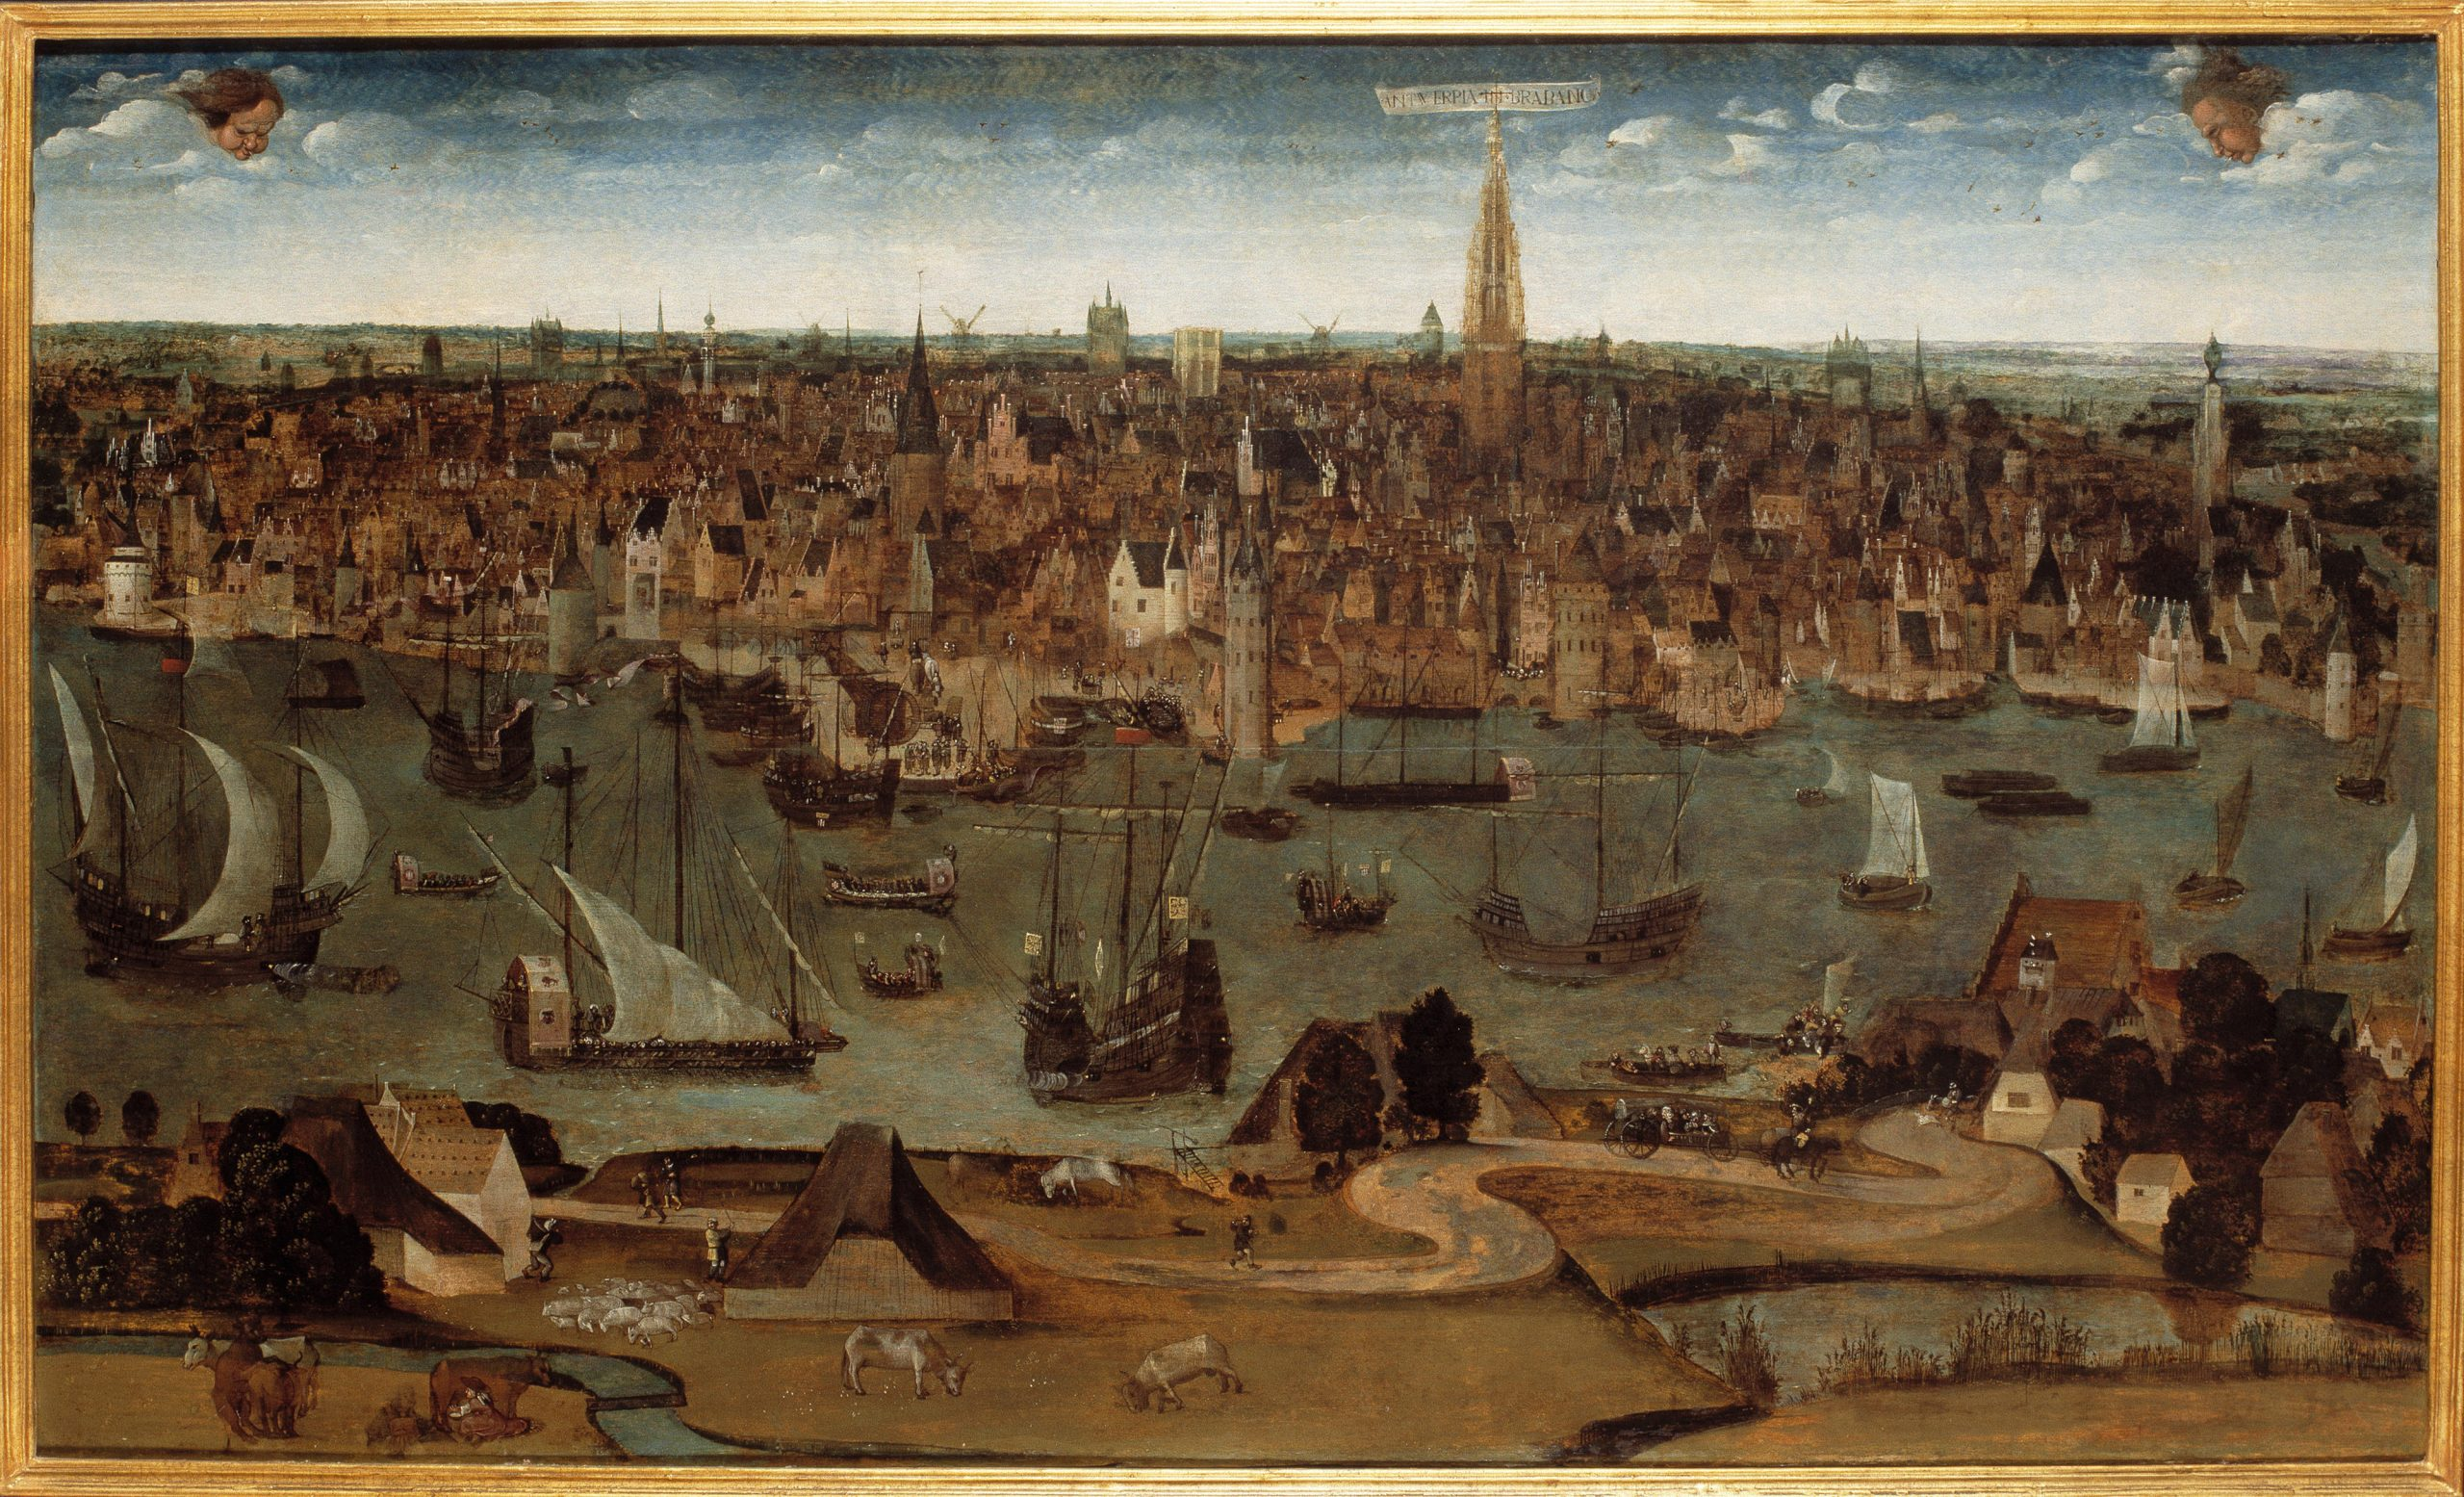 Antwerpia in Brabancia, a view of the city in 1530, from the collection of MAS. Artist anonymous.